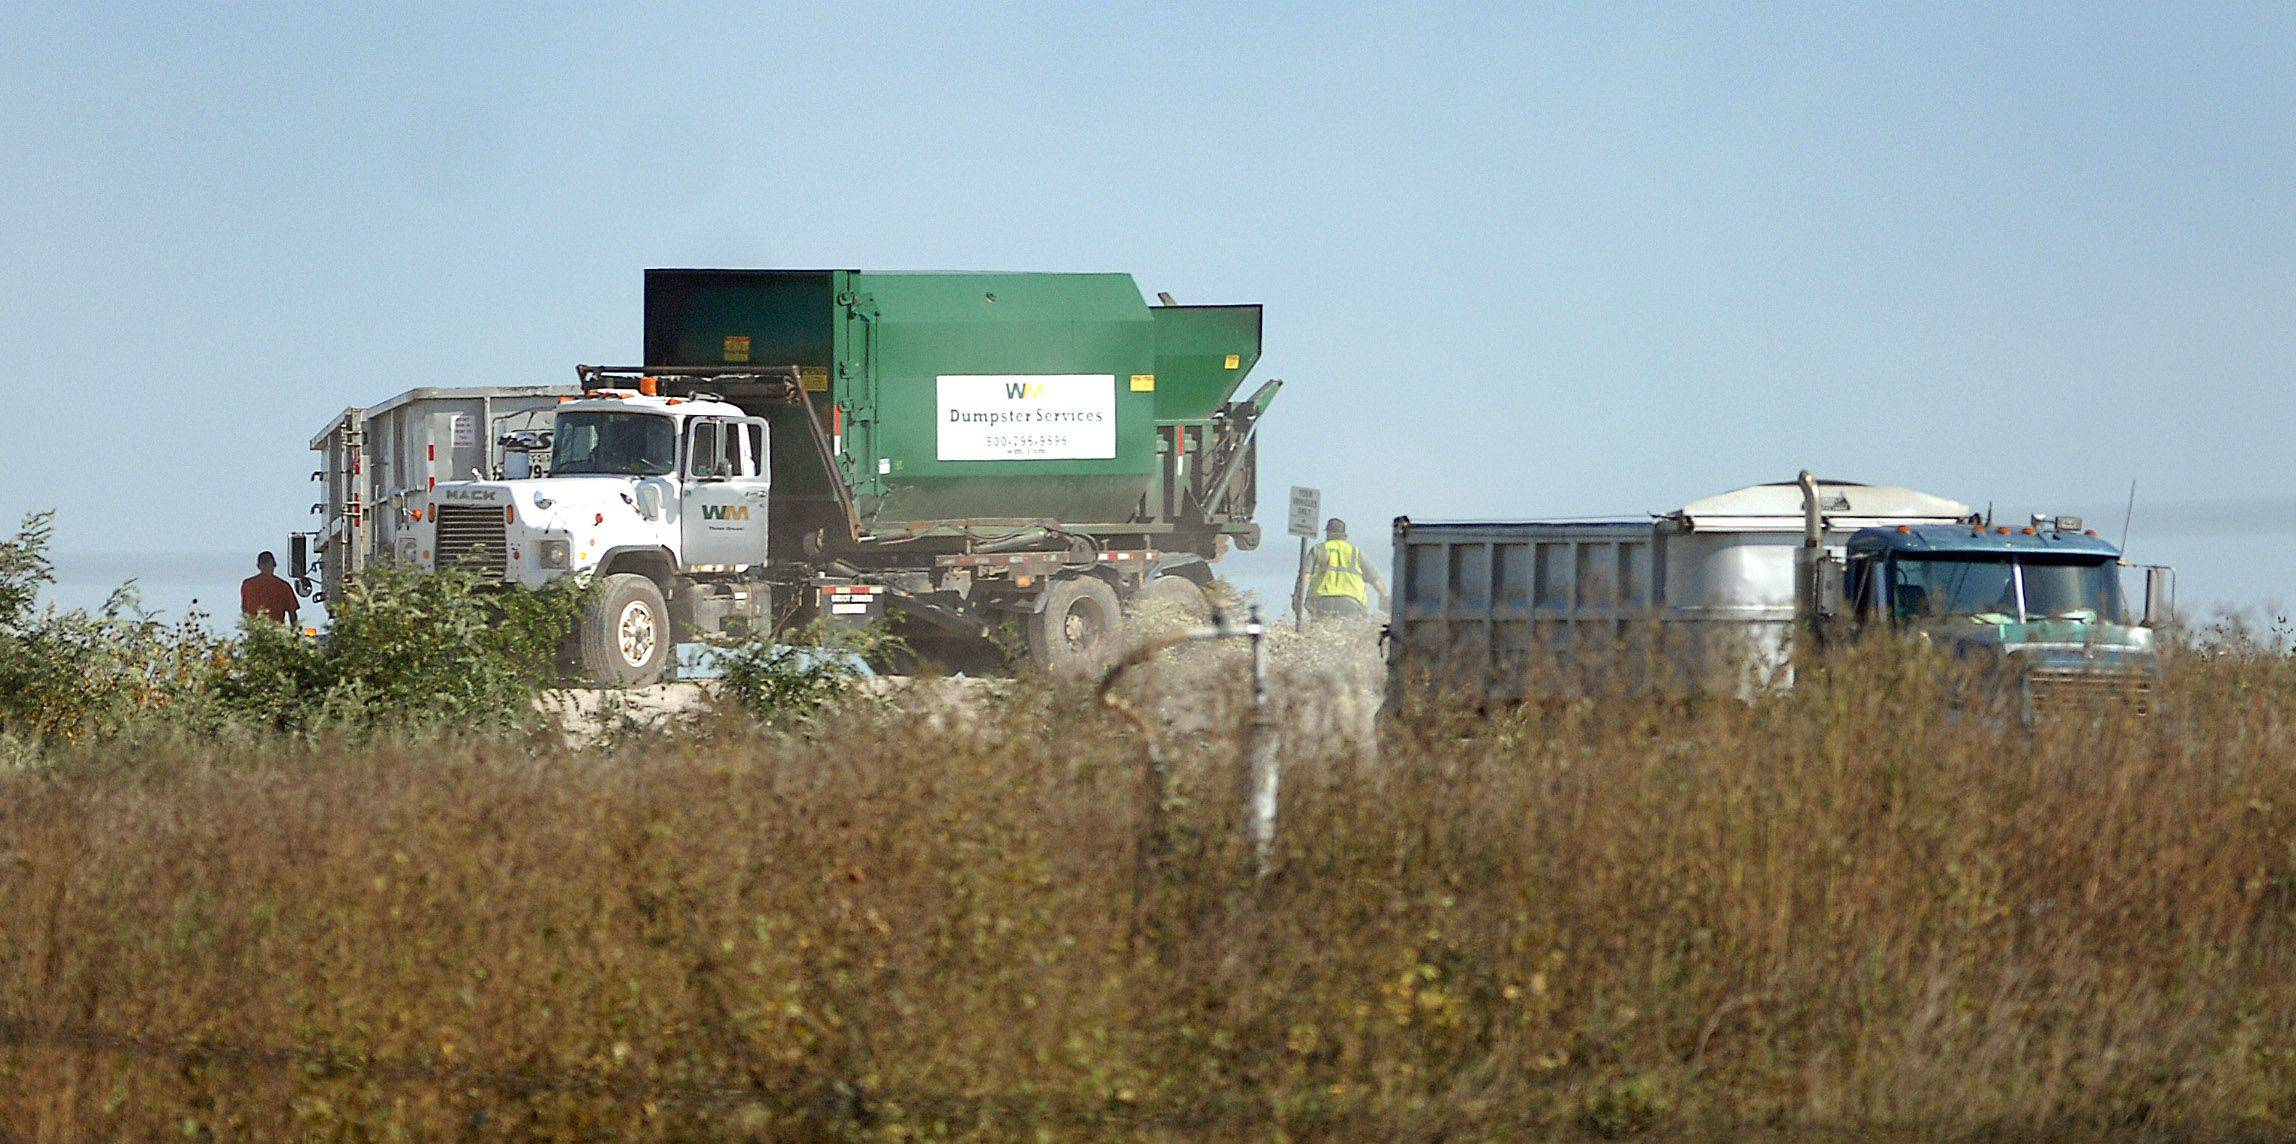 Agreement would provide monitoring at Grayslake landfill